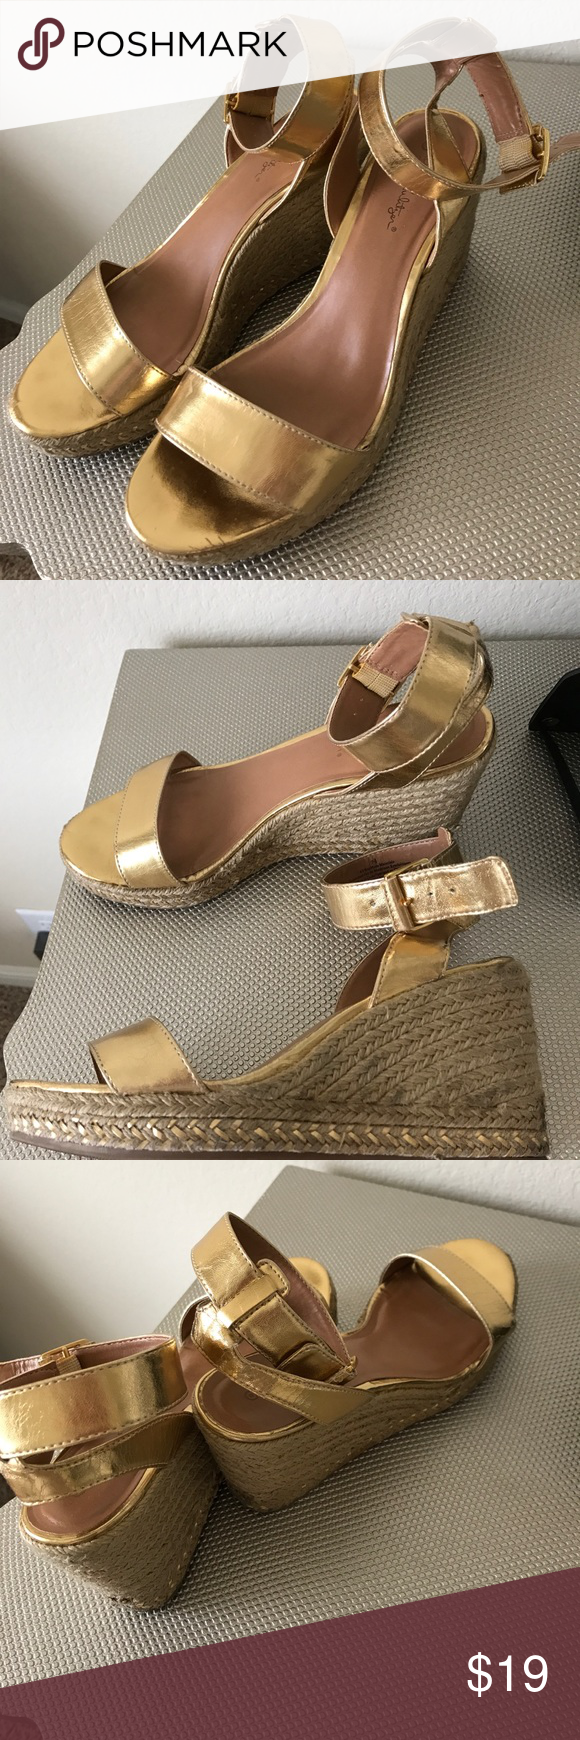 c05933bb671 Lilly for Target gold wedge sandals Gold wedge sandals from the Lilly for  Target cspsule collection. Good condition Lilly Pulitzer for Target Shoes  Wedges